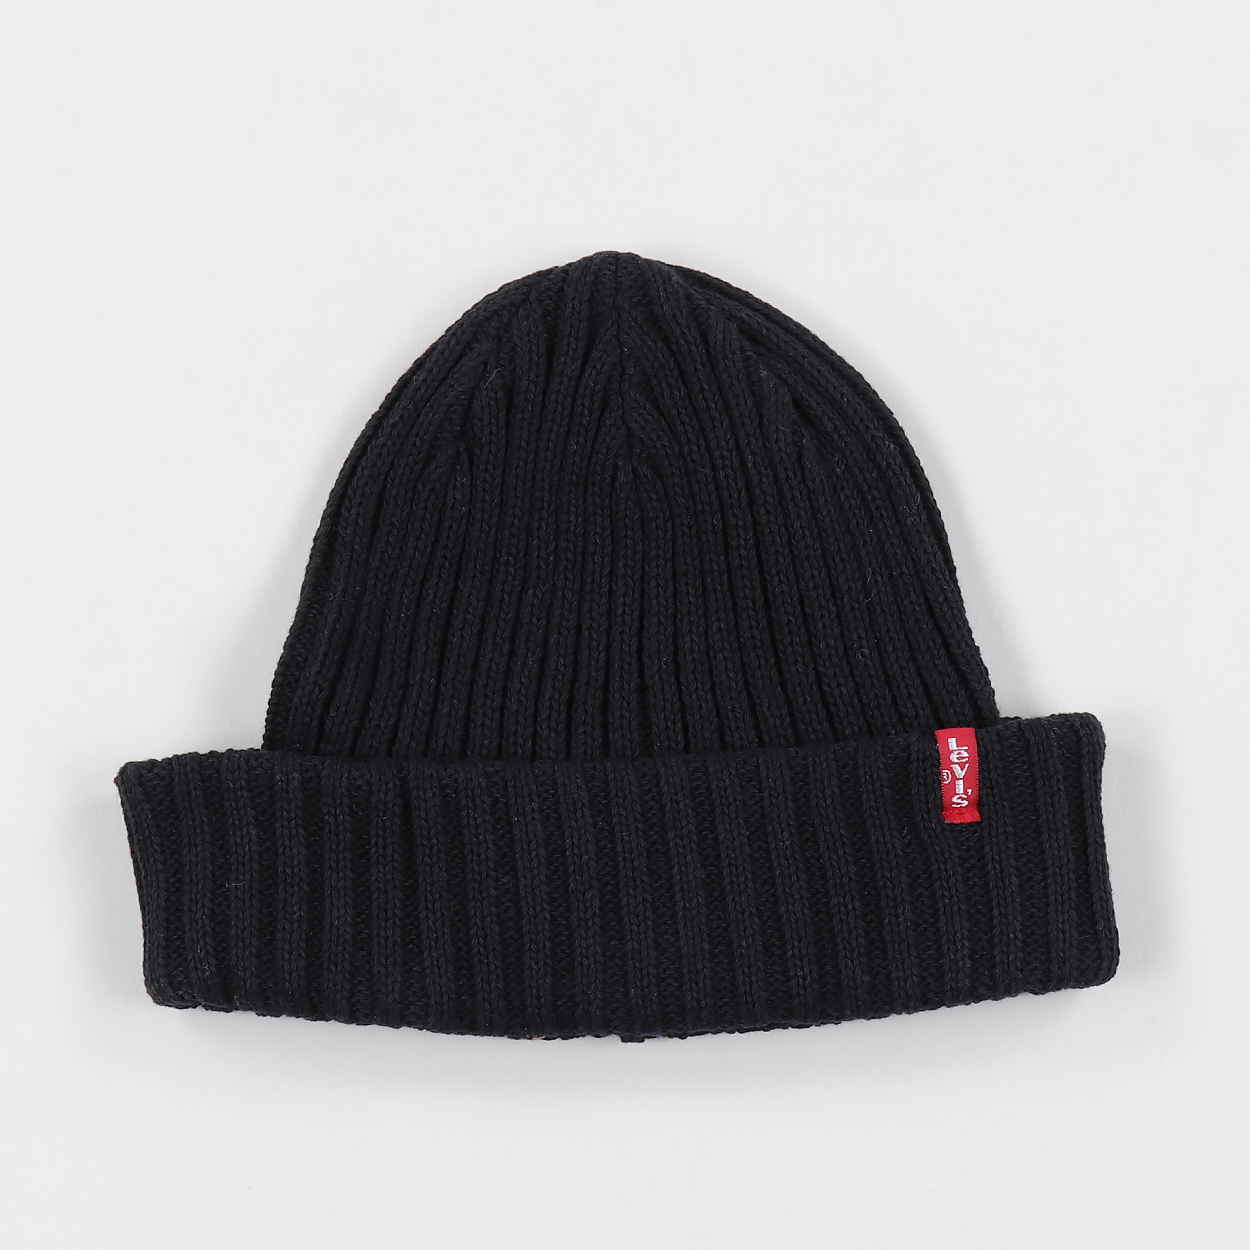 3b9480f3528 Levis Mens One Size Fits Most Ribbed Red Tab Cuff Beanie Black £15.60